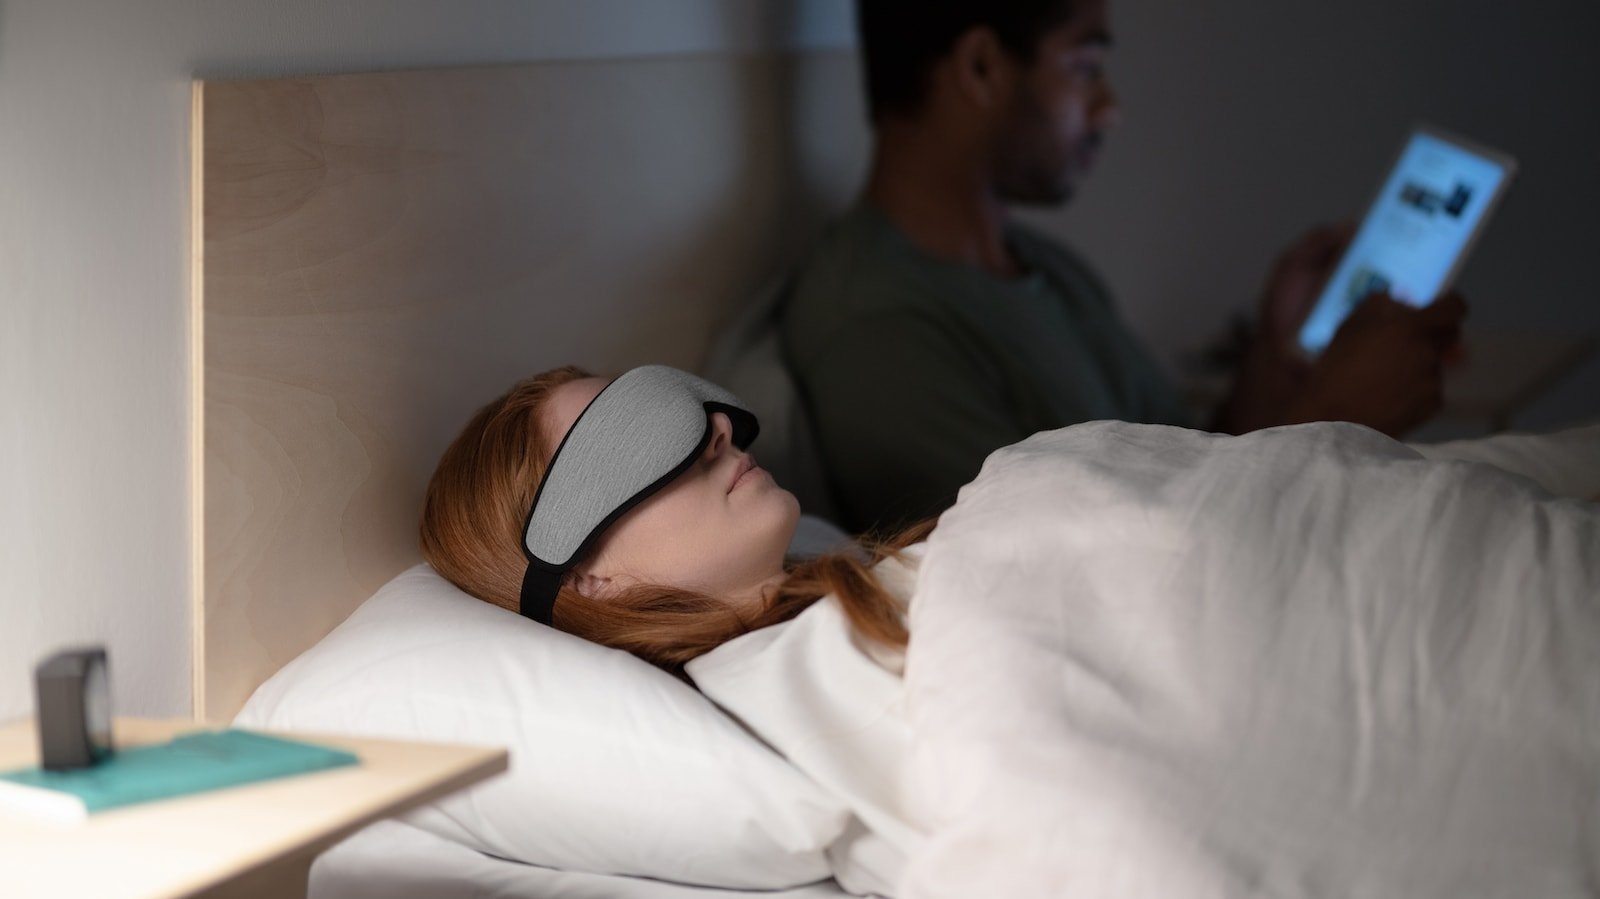 Ostrichpillow Ergonomic Eye Mask has a 3D design that adapts to the features of your face